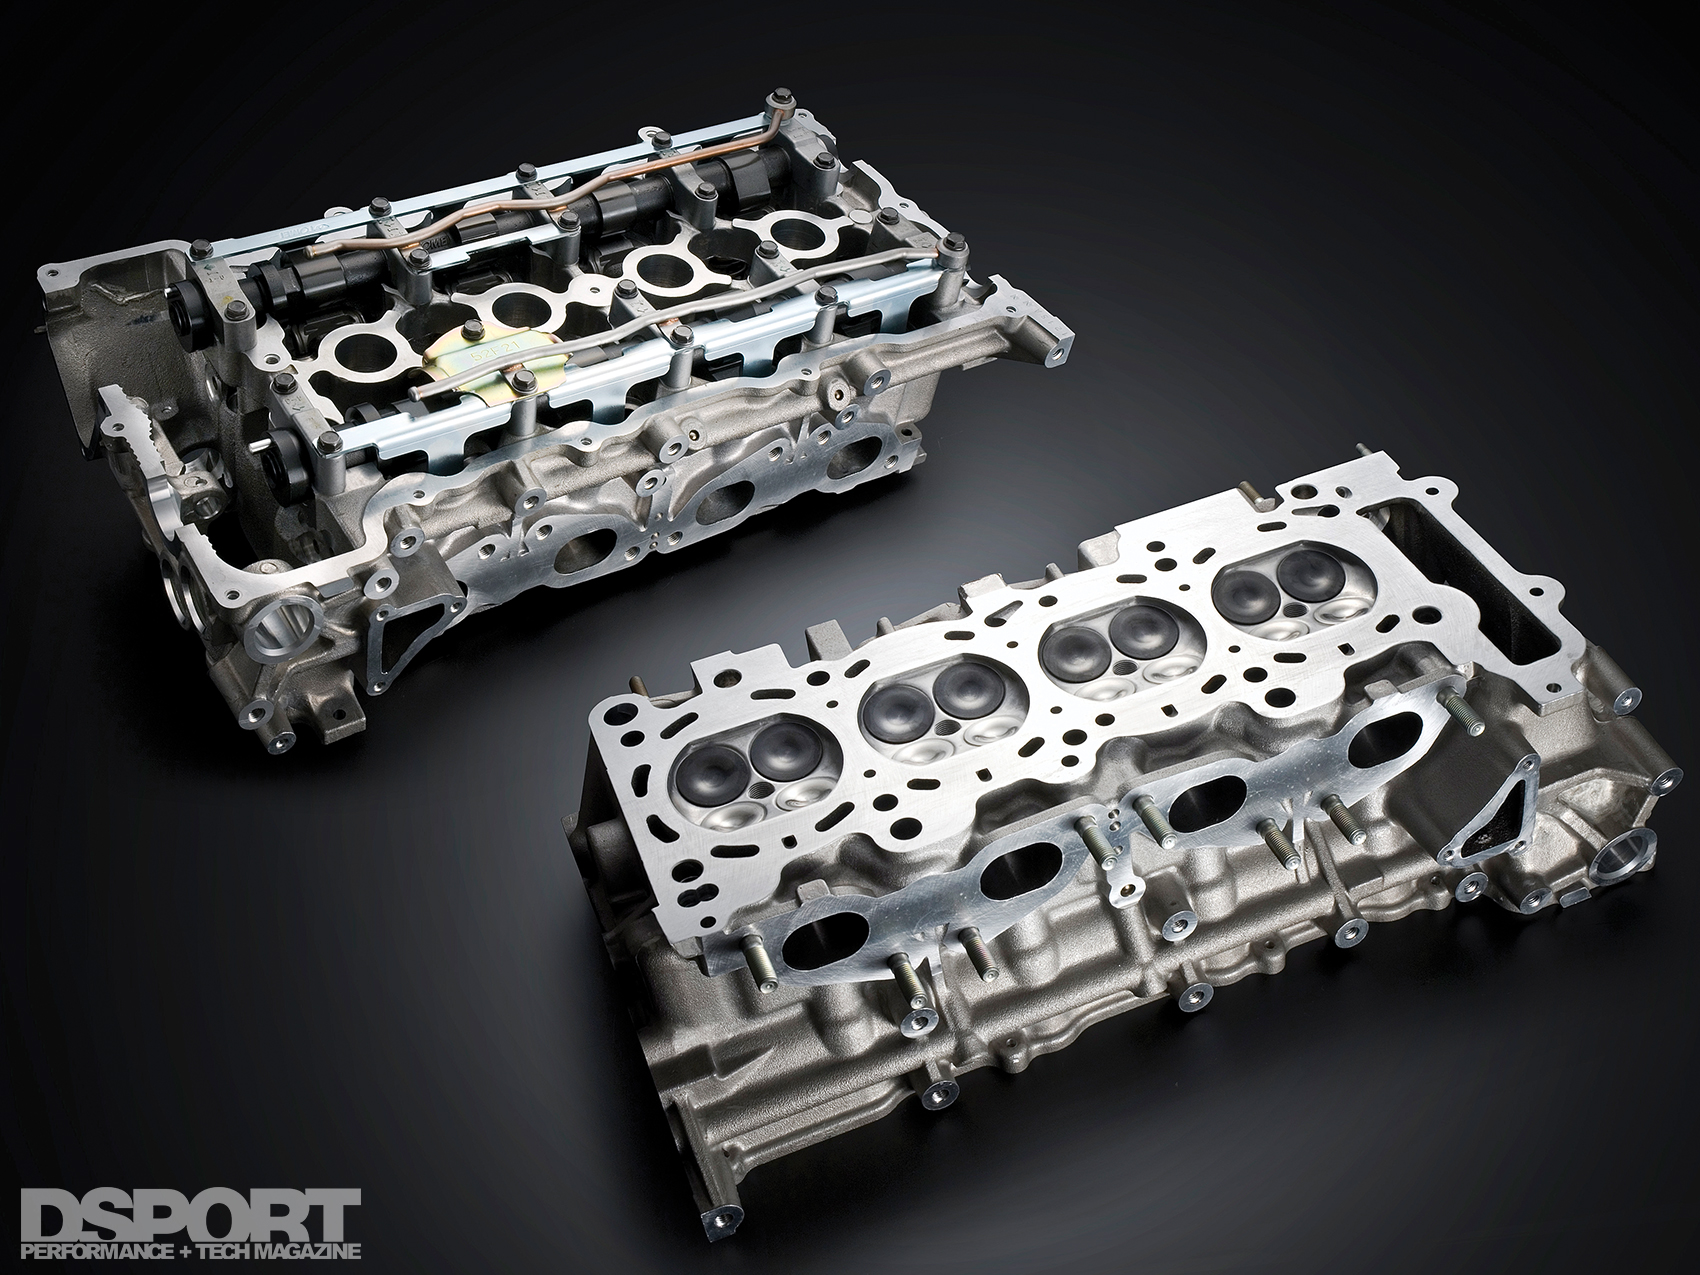 KA24DE vs SR20DET Act III | SR20DET Heads Up